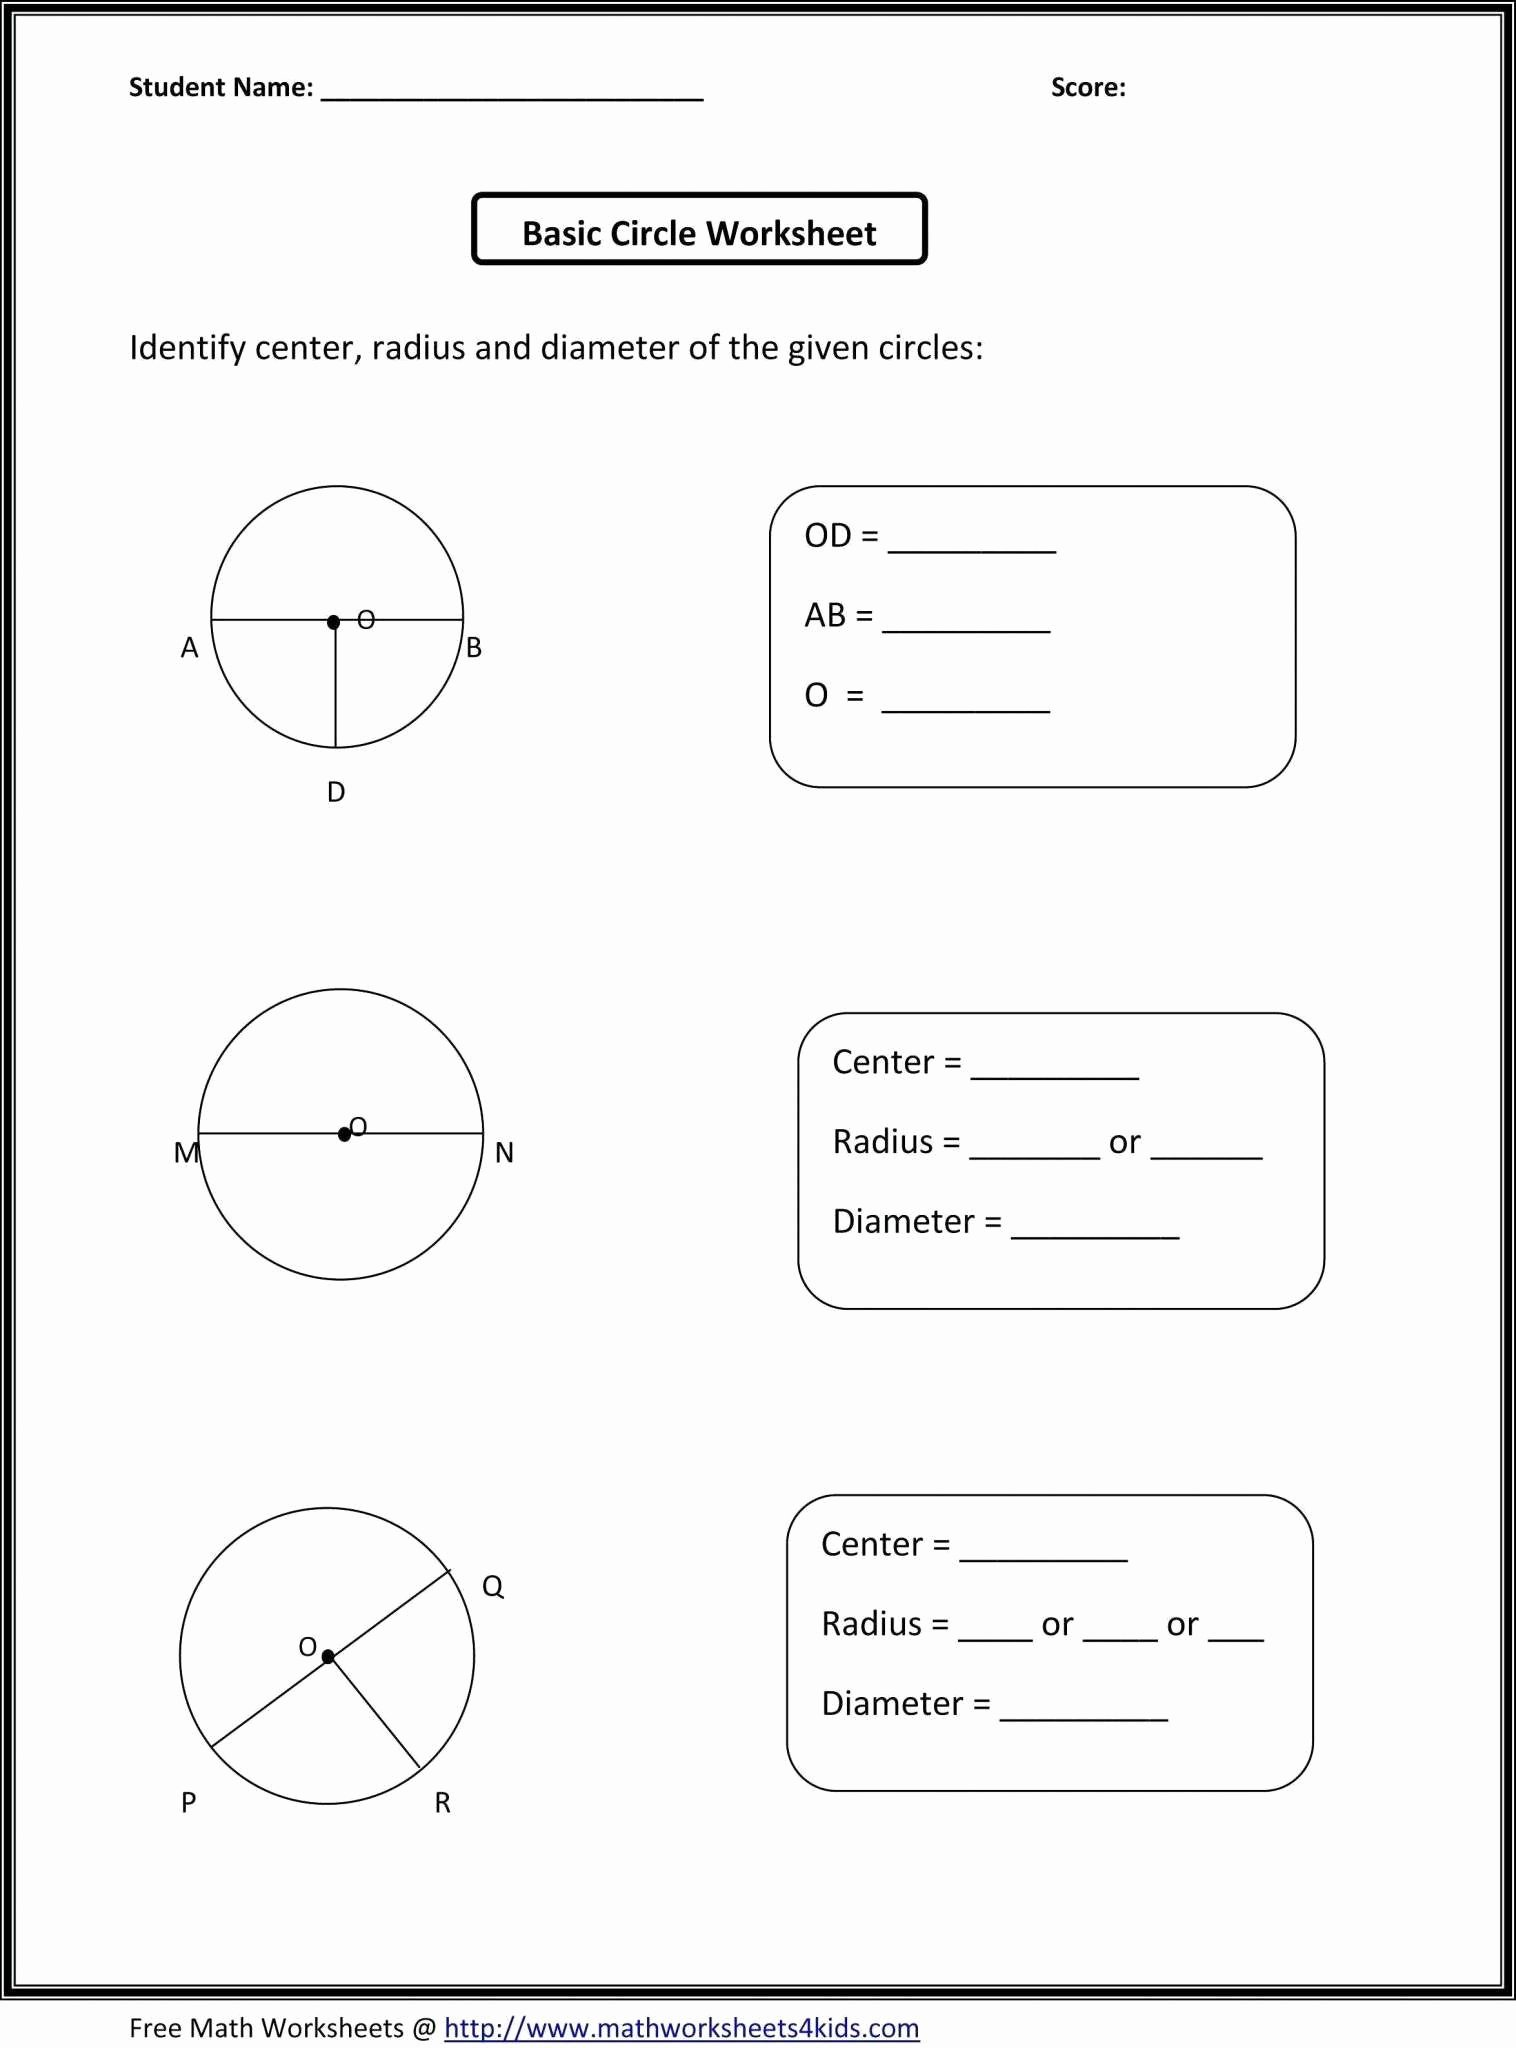 Ecological Relationships Worksheet Answers Elegant Ecological Relationships Worksheet Answers Worksheet